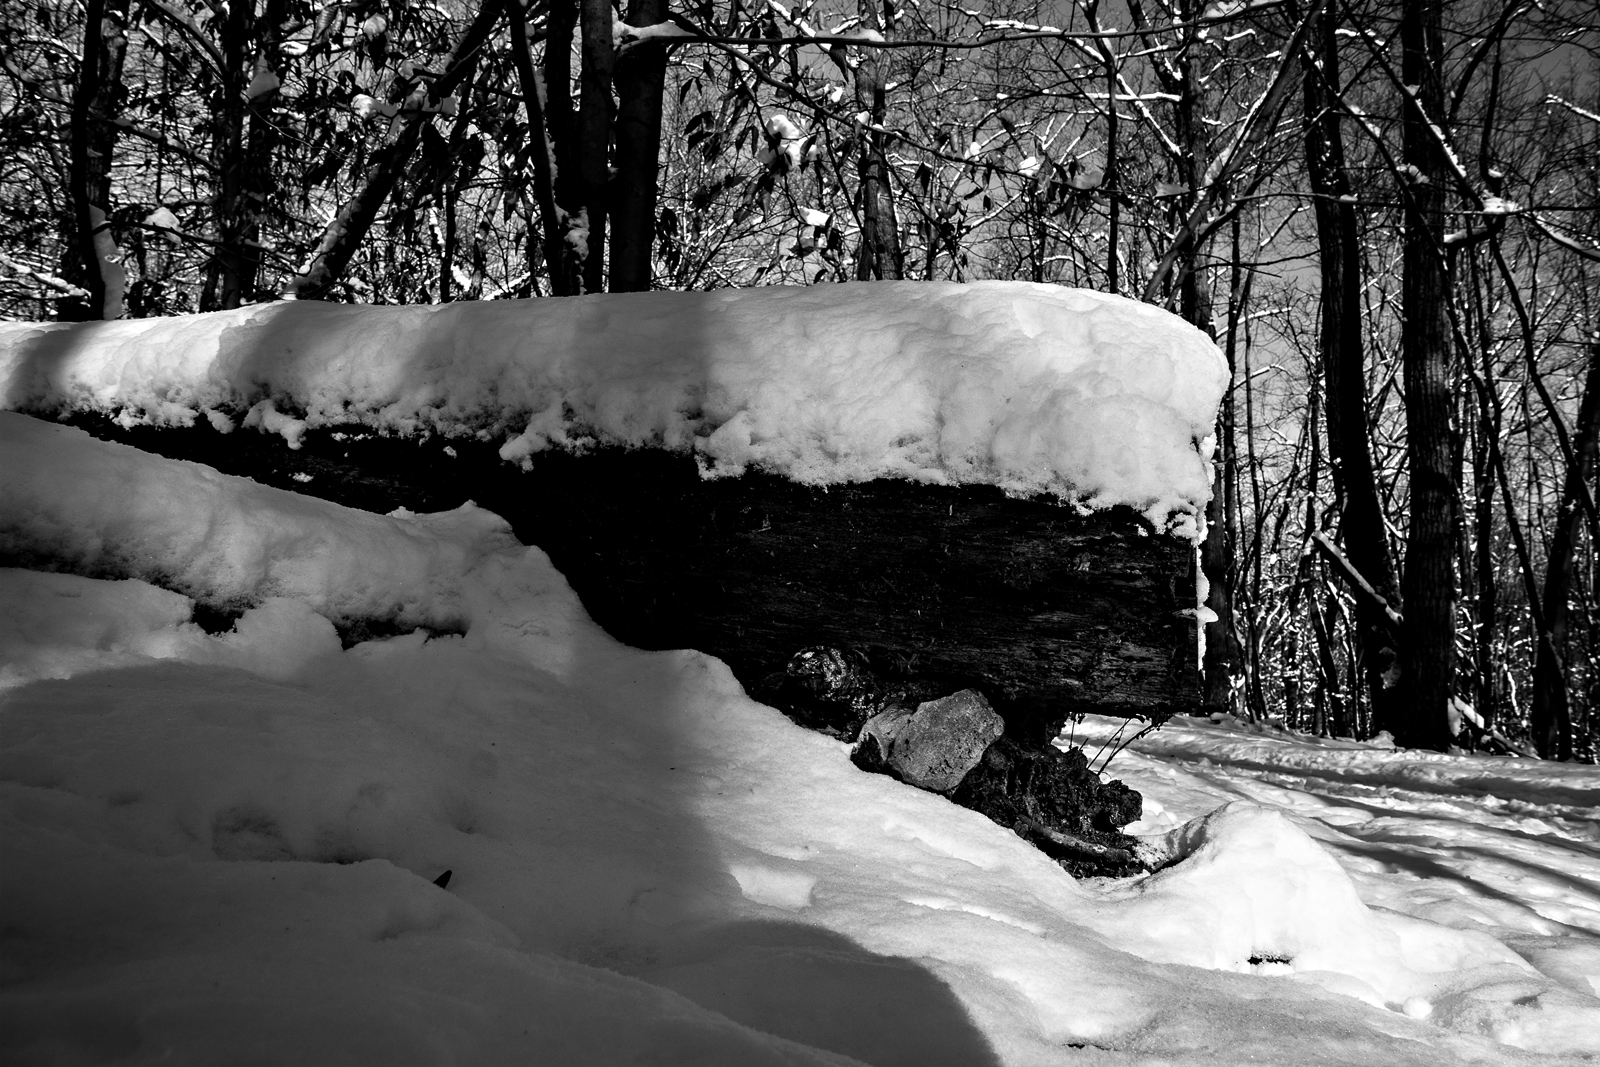 Predator Trees Are Everywhere. Mount Misery trail after a snow storm. Valley Forge National Park, PA